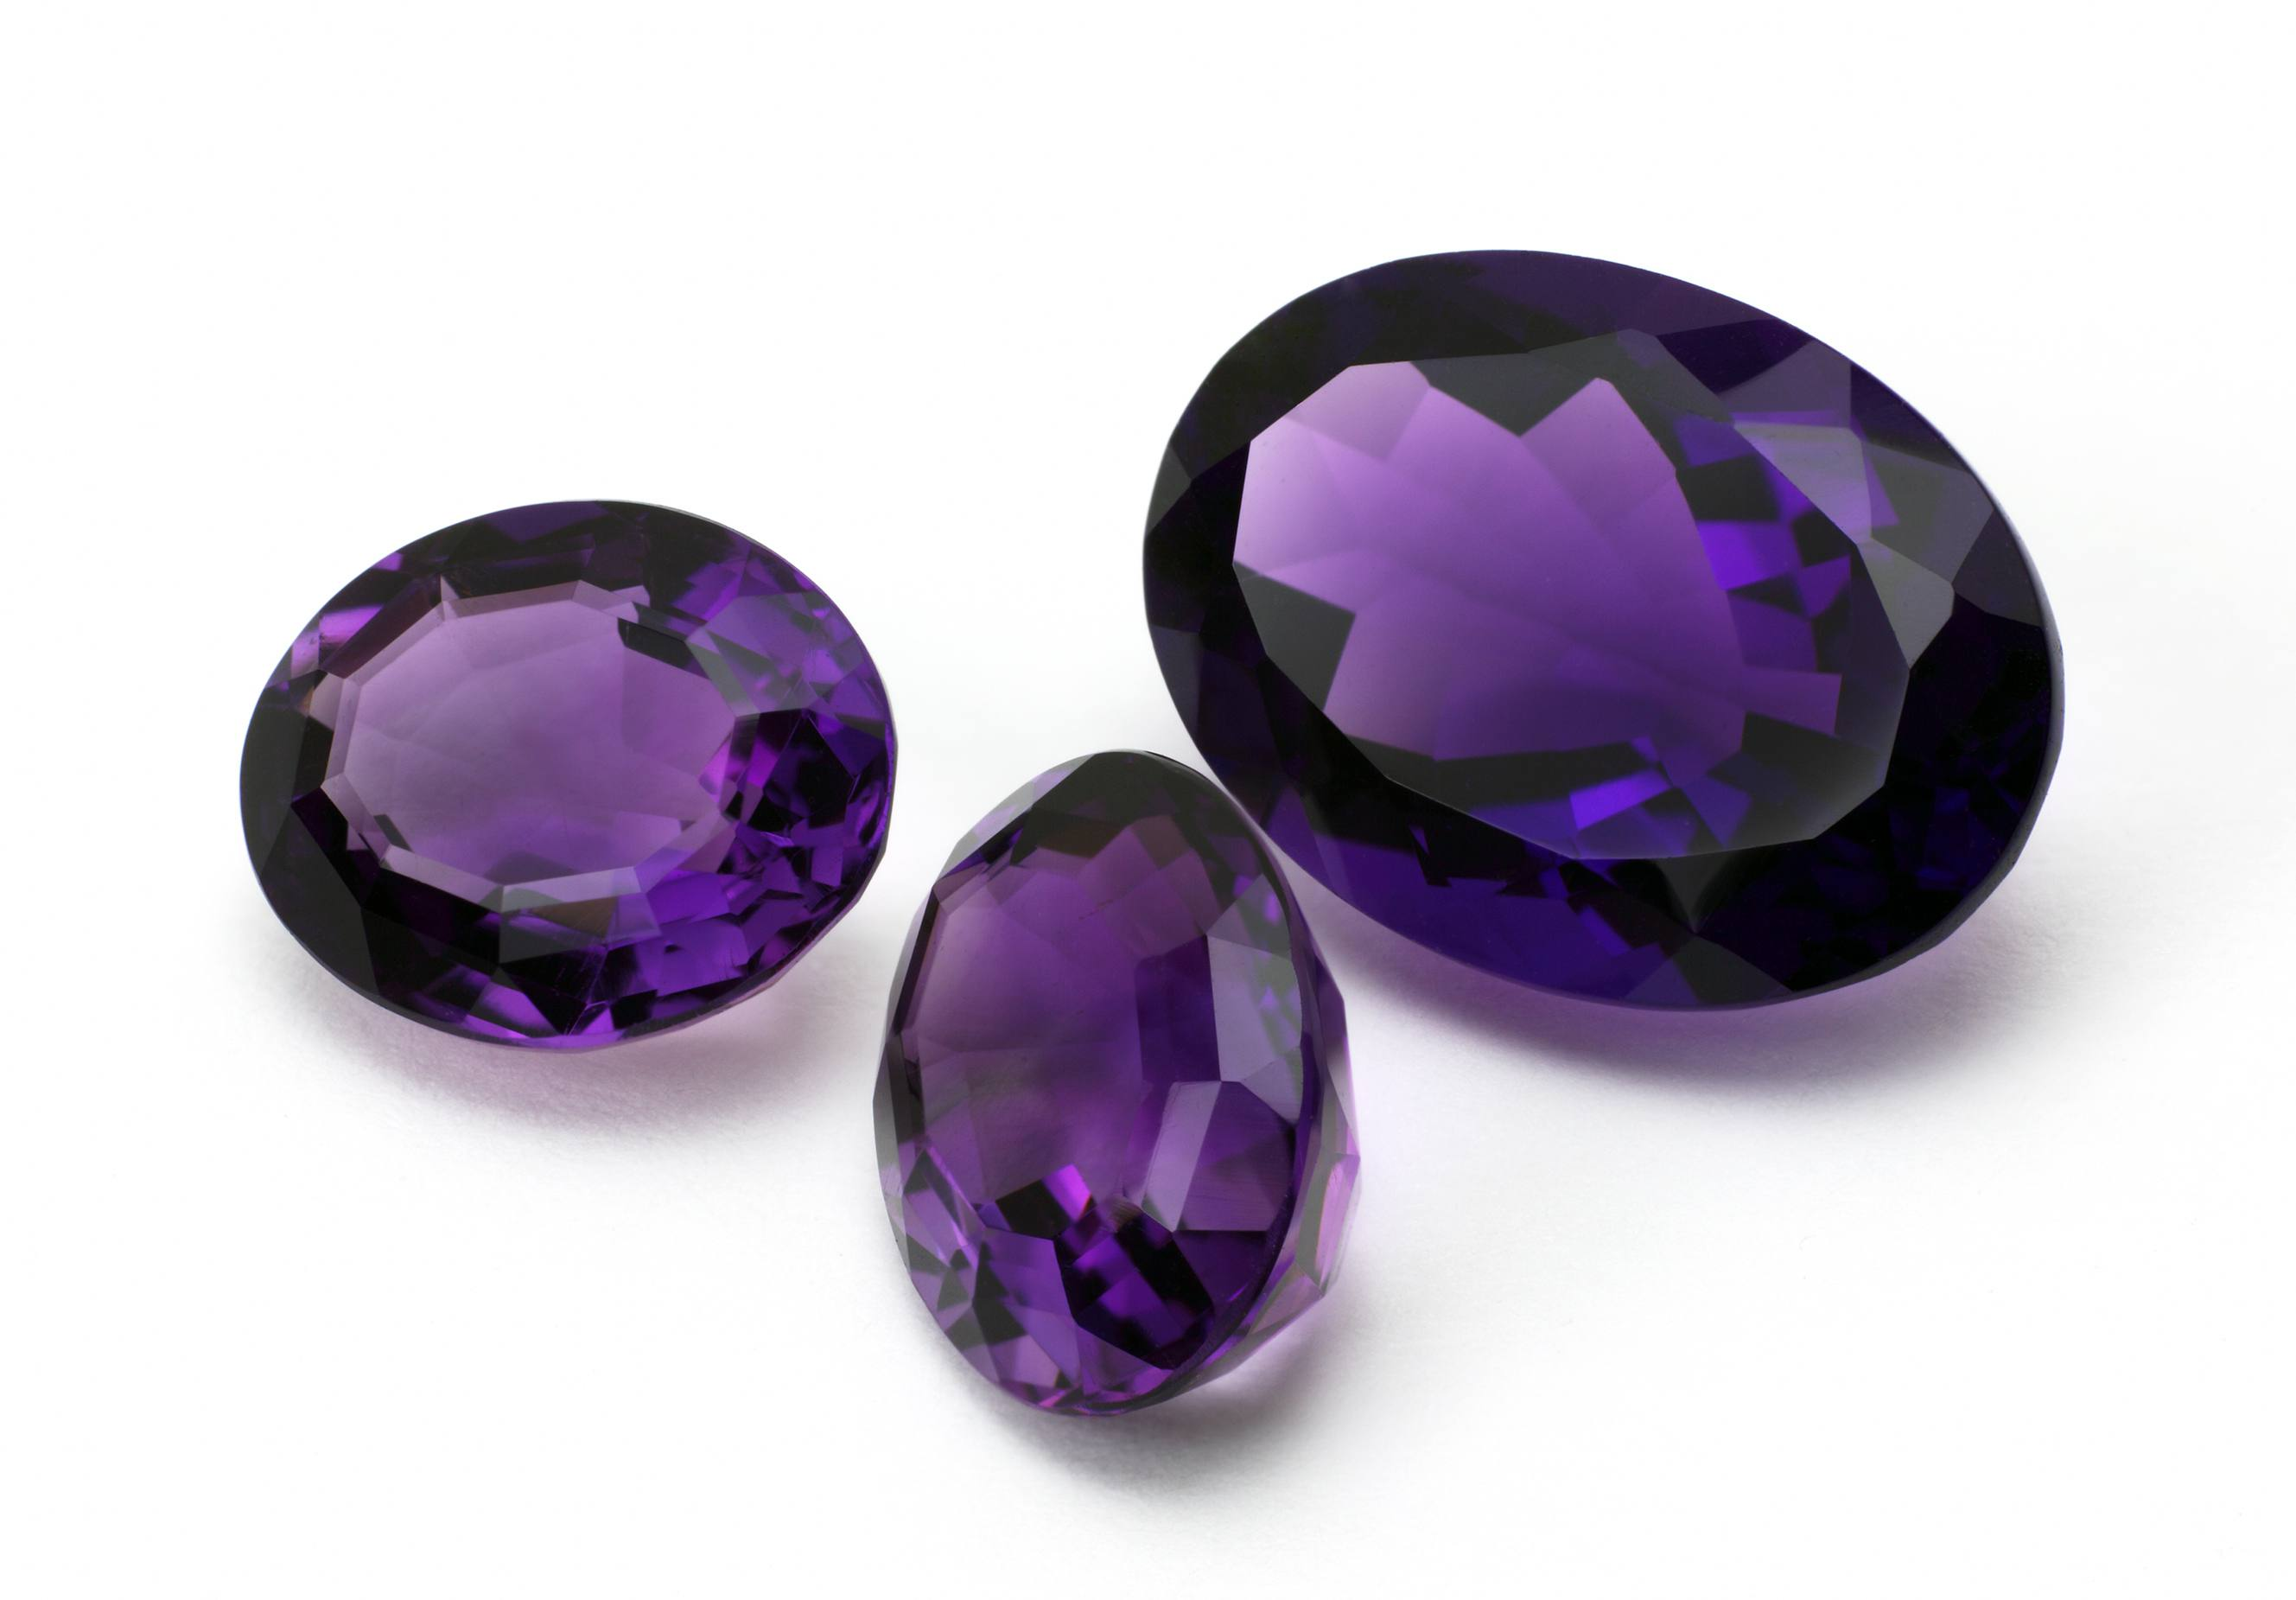 tips cleef to design book for upscale pantones van purple tiffany s in gem arpels crop the pantone from bulgari amethyst gemstone brooch blue trend scale be subsampling makes false pomellato ultra article color schlumberger of jewellery violet